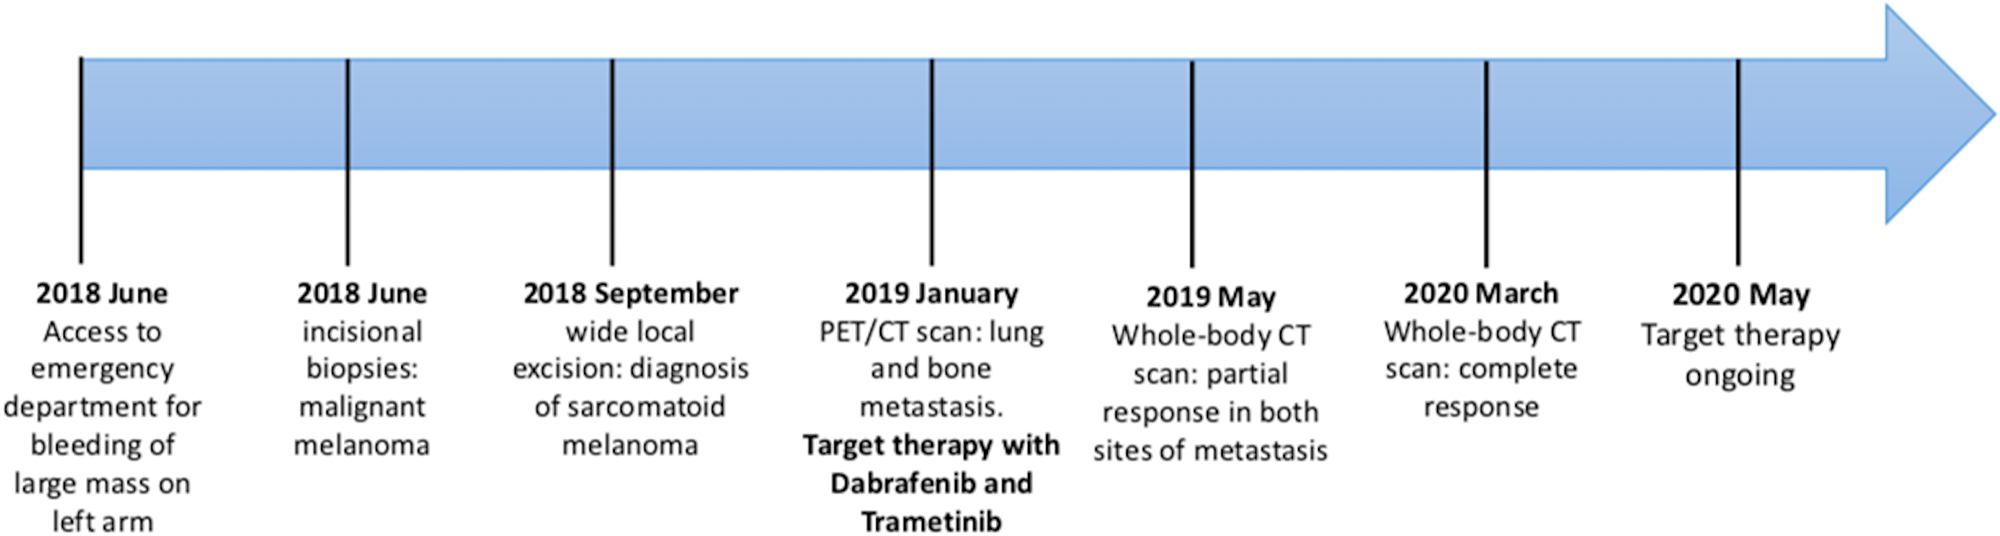 Timeline of patient's medical history.